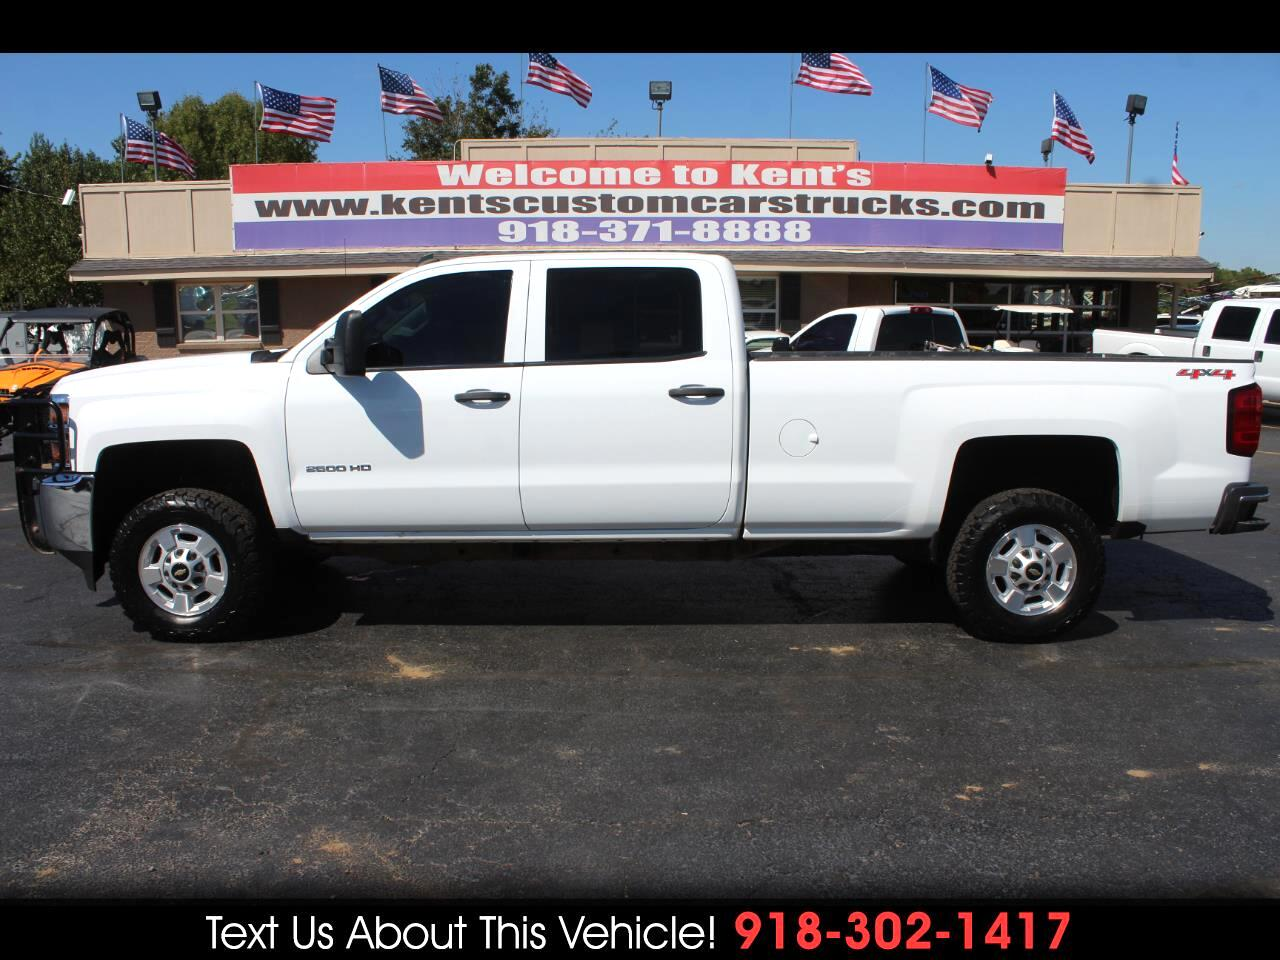 2015 Chevrolet Silverado 2500HD LT Crew Cab 4WD Long Bed